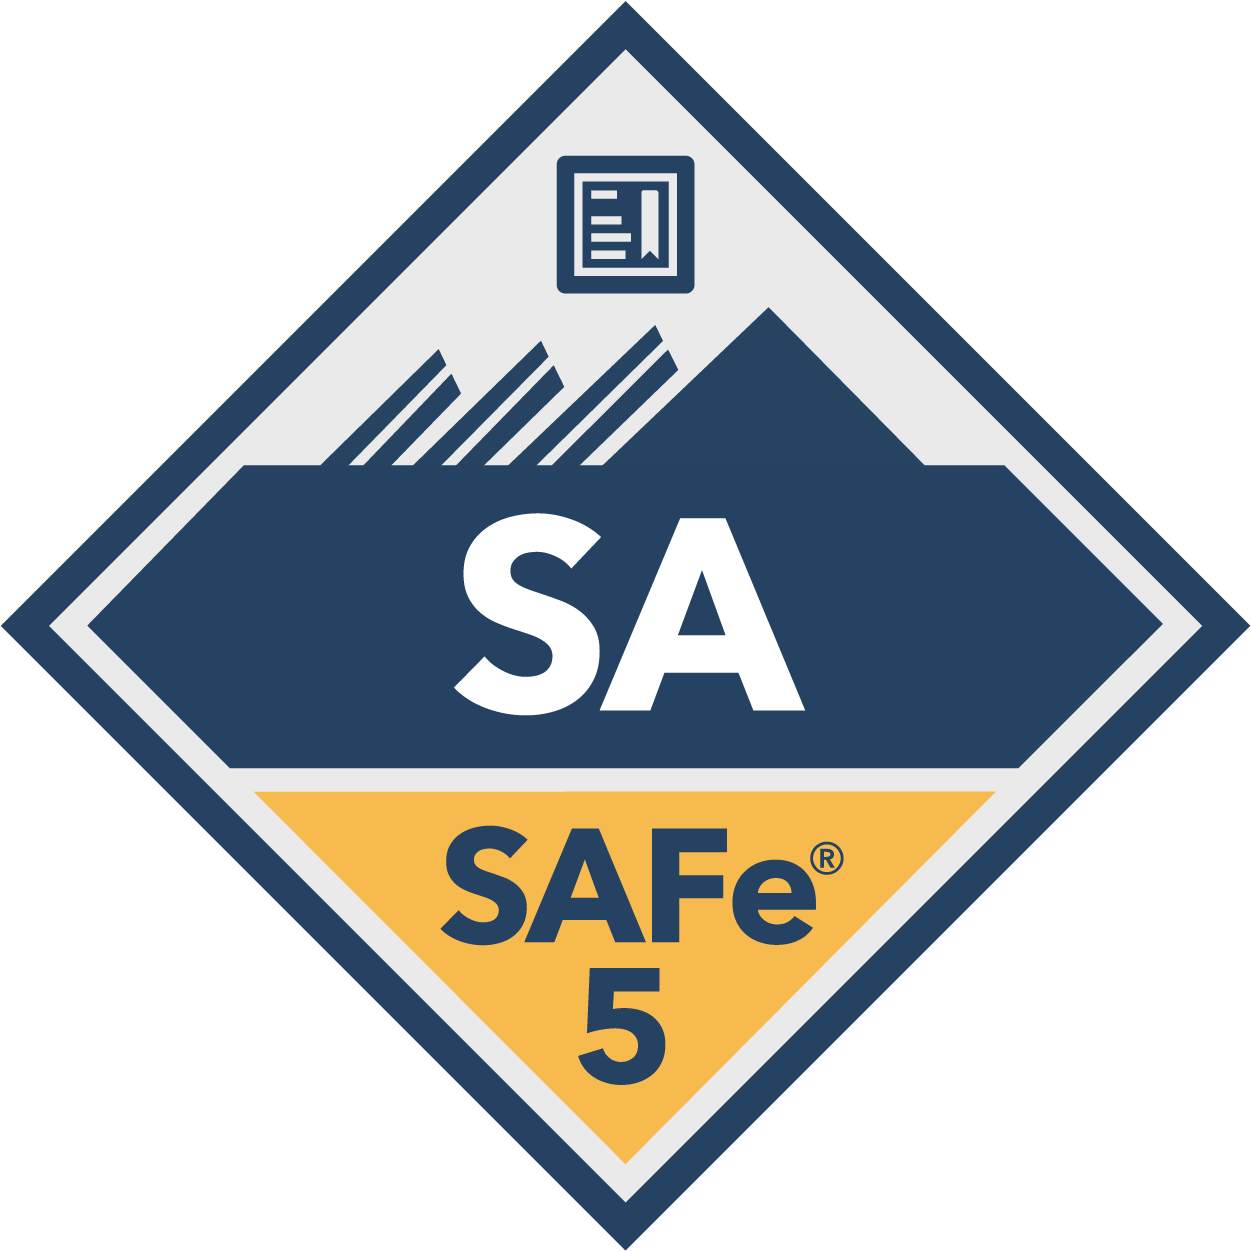 Online SAFe 5.0 with SAFe Agilist(SA) Certification Anchorage, Alaska(Weekend)